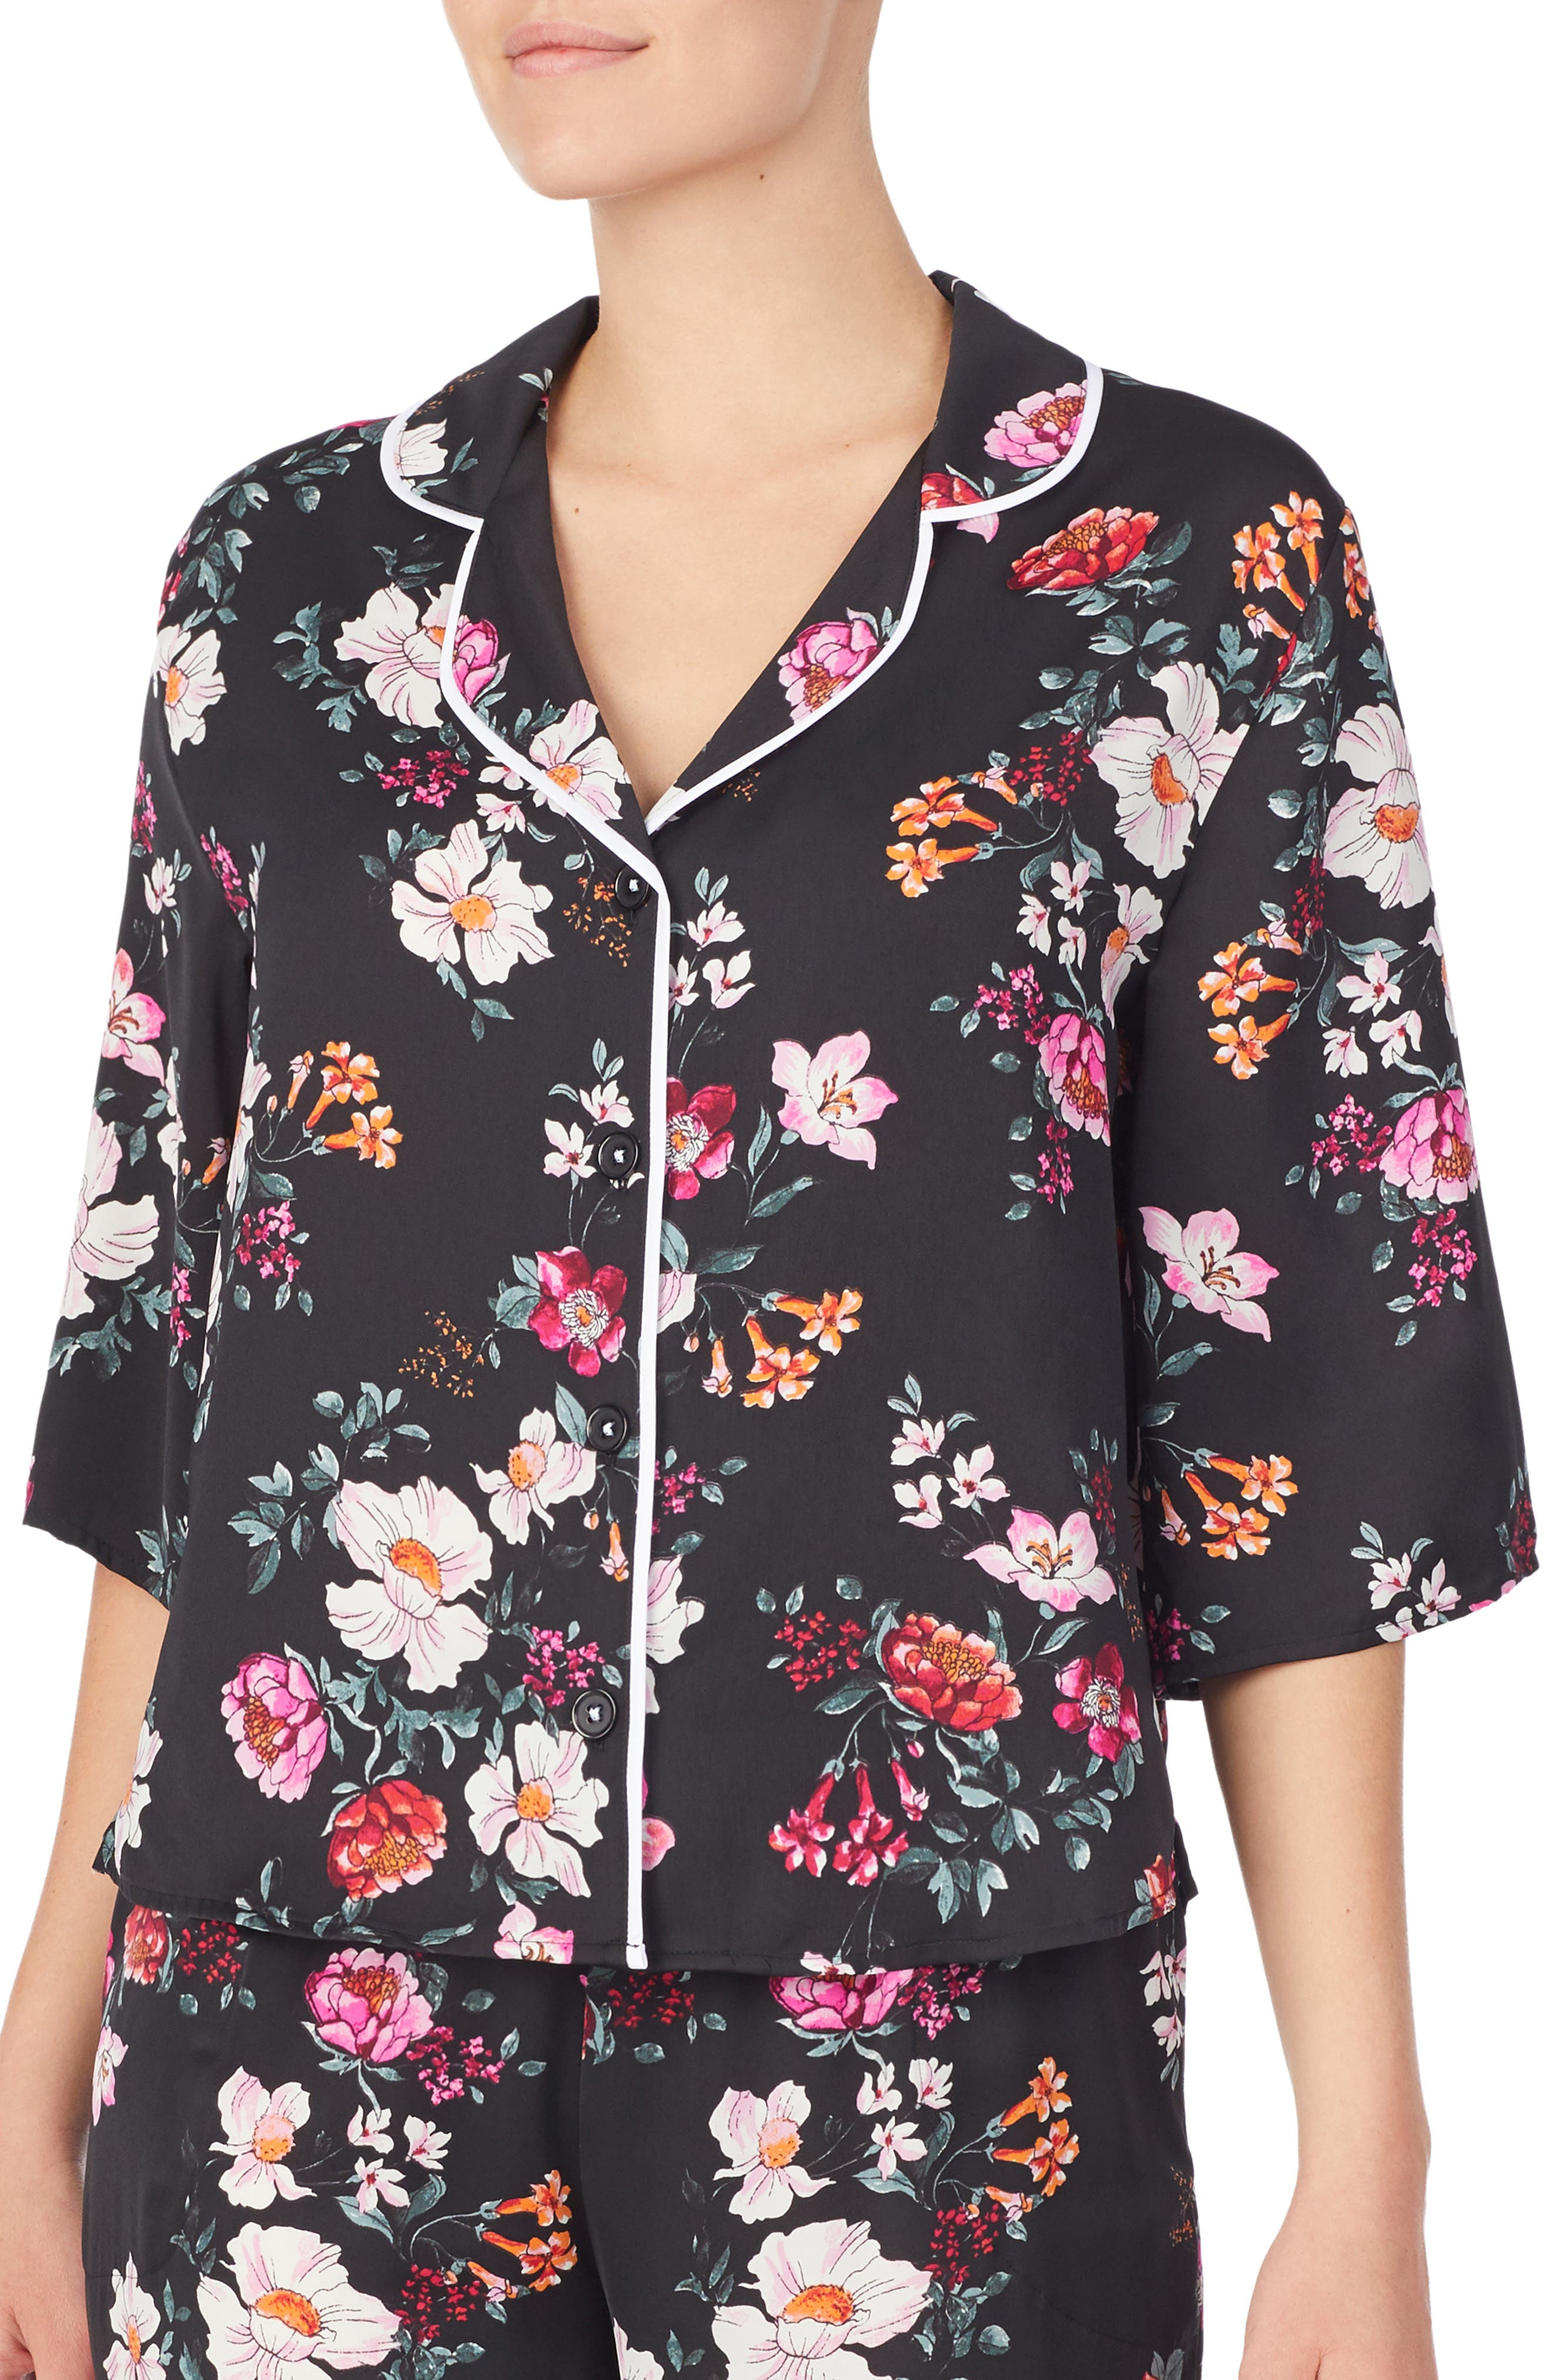 Room Service Pajama Top, Black (Nordstrom Exclusive)